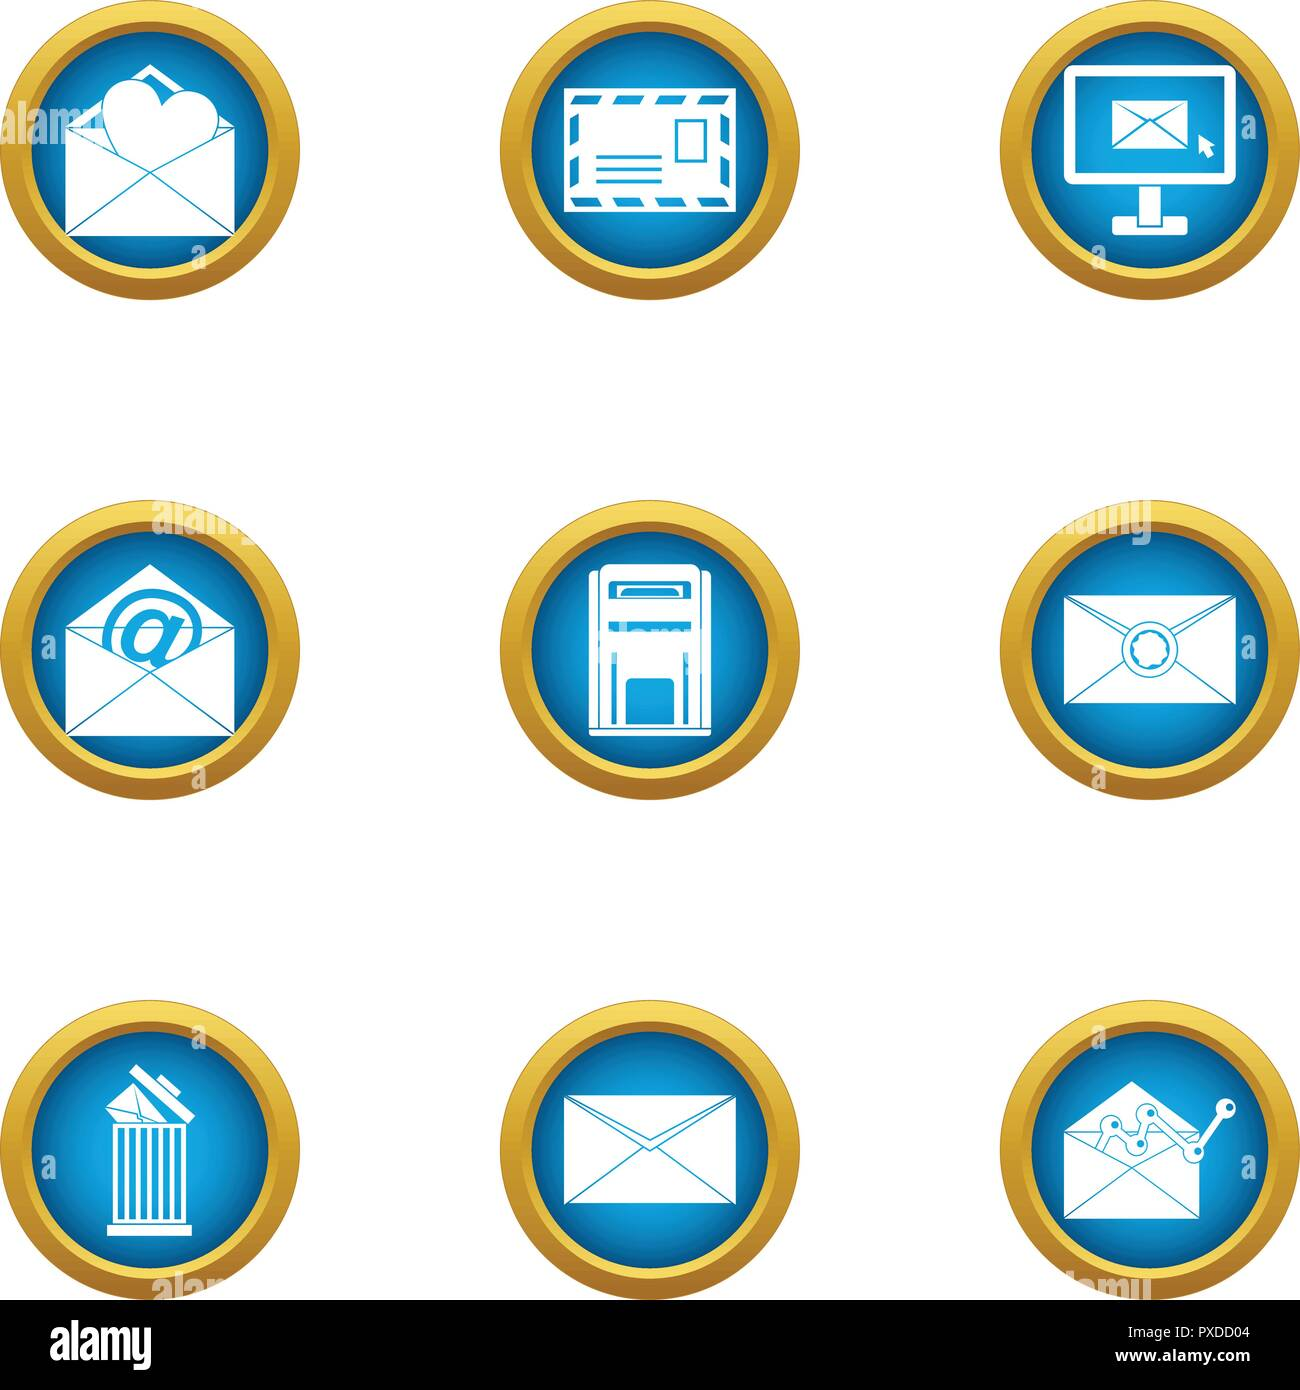 Letter delivery icons set, flat style - Stock Vector